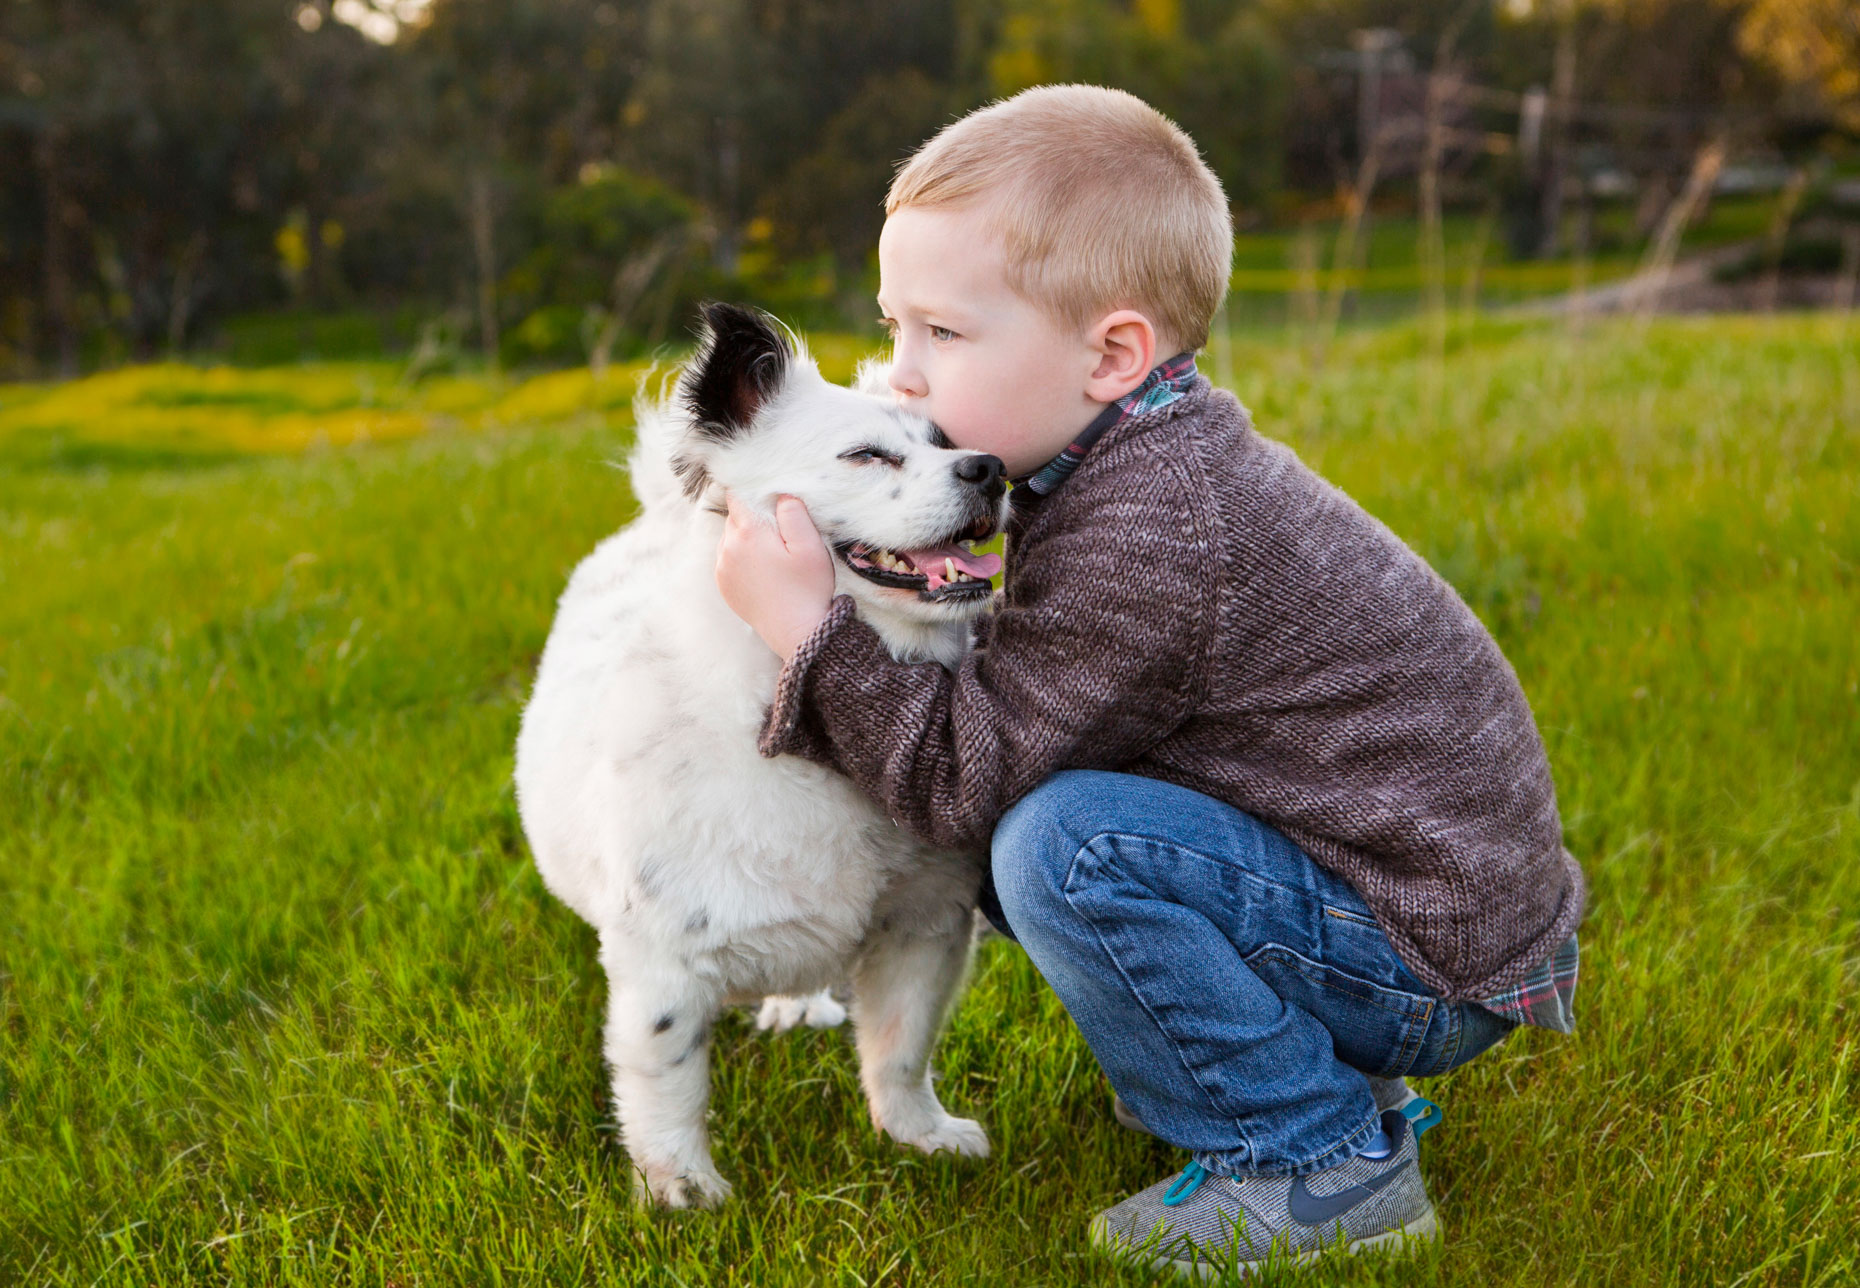 Dog and People Photography | Boy Kissing Dog by Mark Rogers